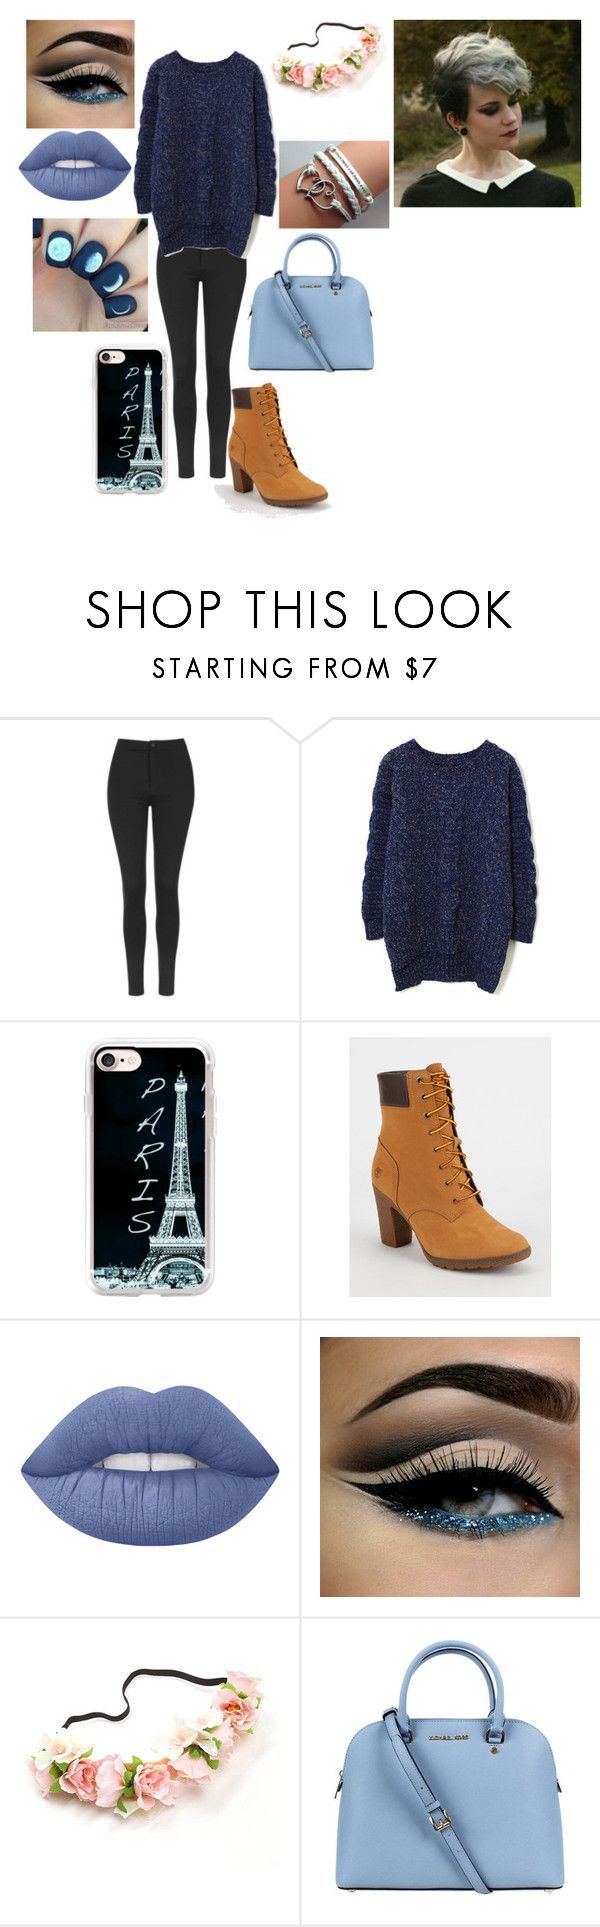 "4486b03351fd77b1d1a9481a0e64f38c - ""Untitled #439"" by dino-satan666 ❤ liked on Polyvore featuring Topshop, Chicwi..."